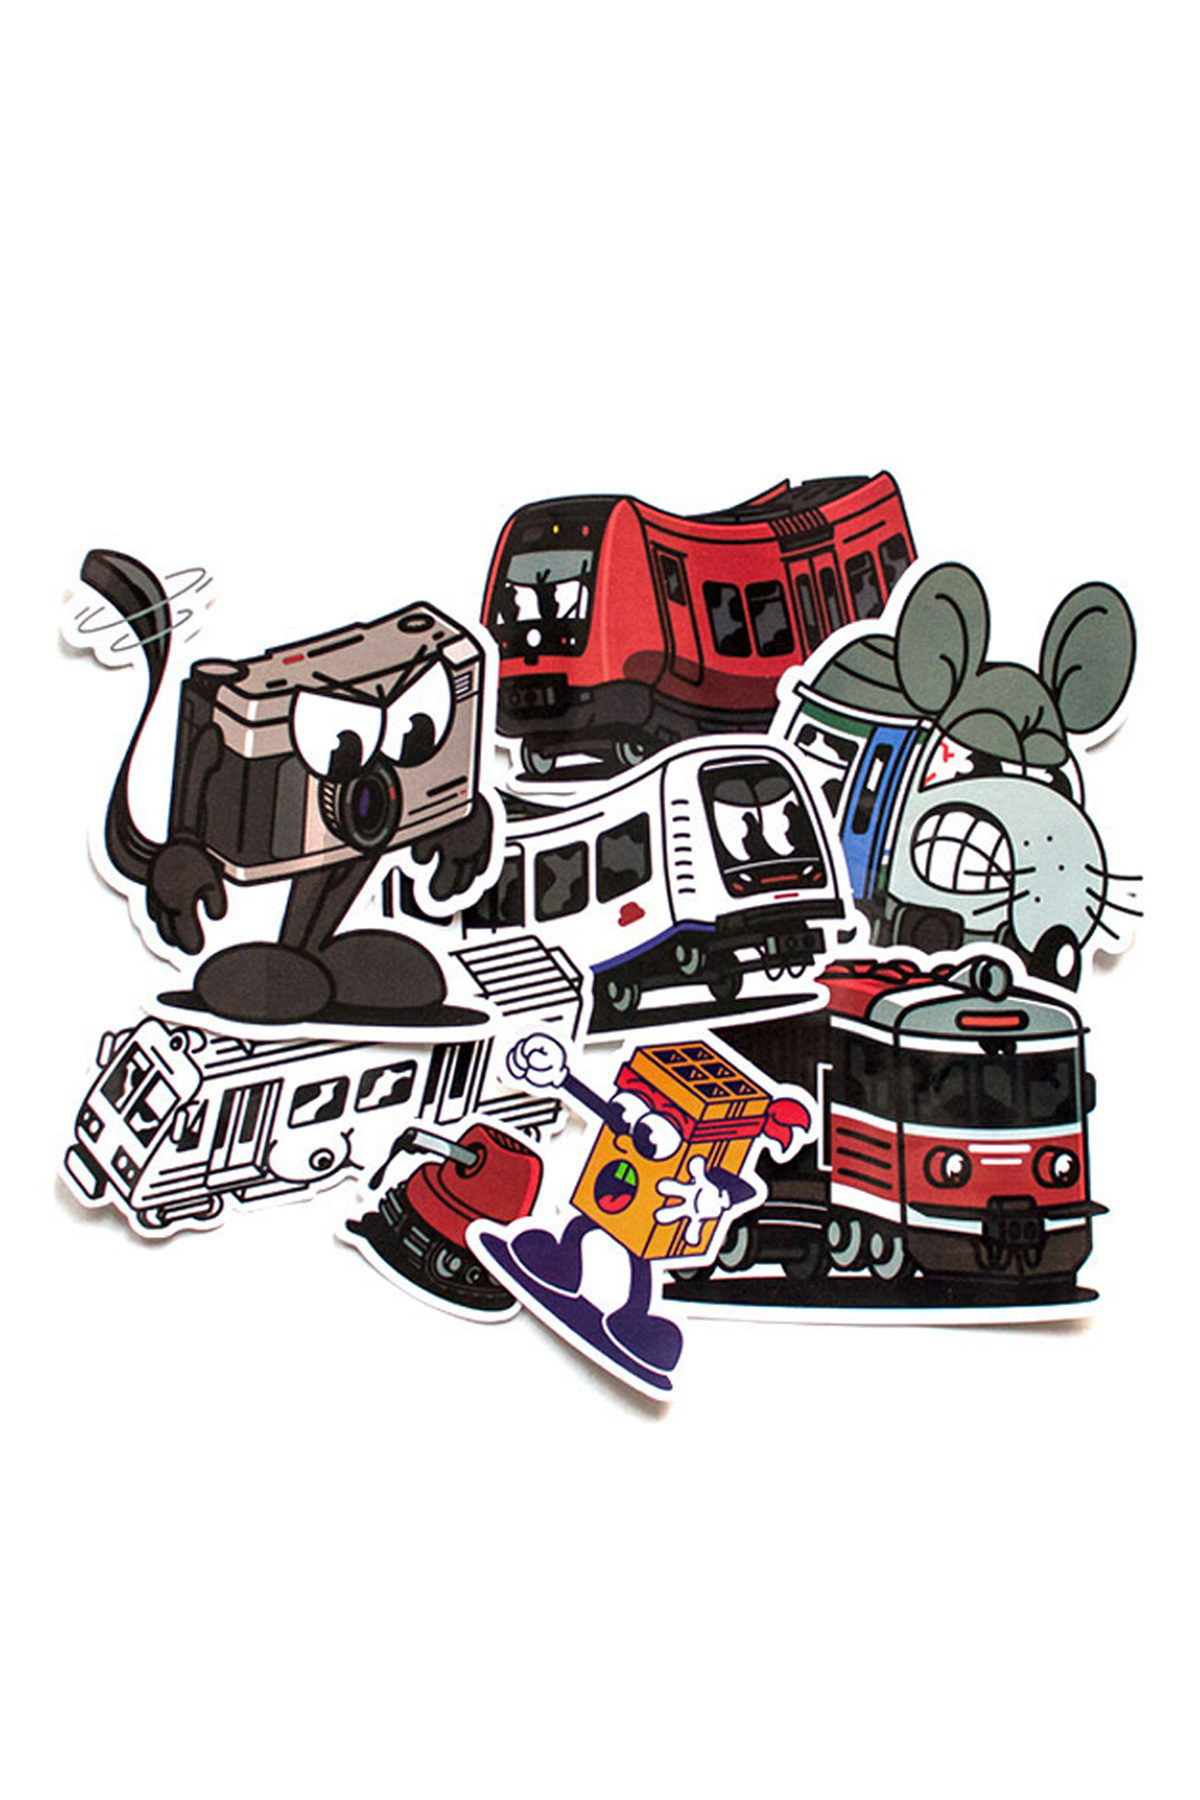 Vandals On Holidays STICKER Set 2